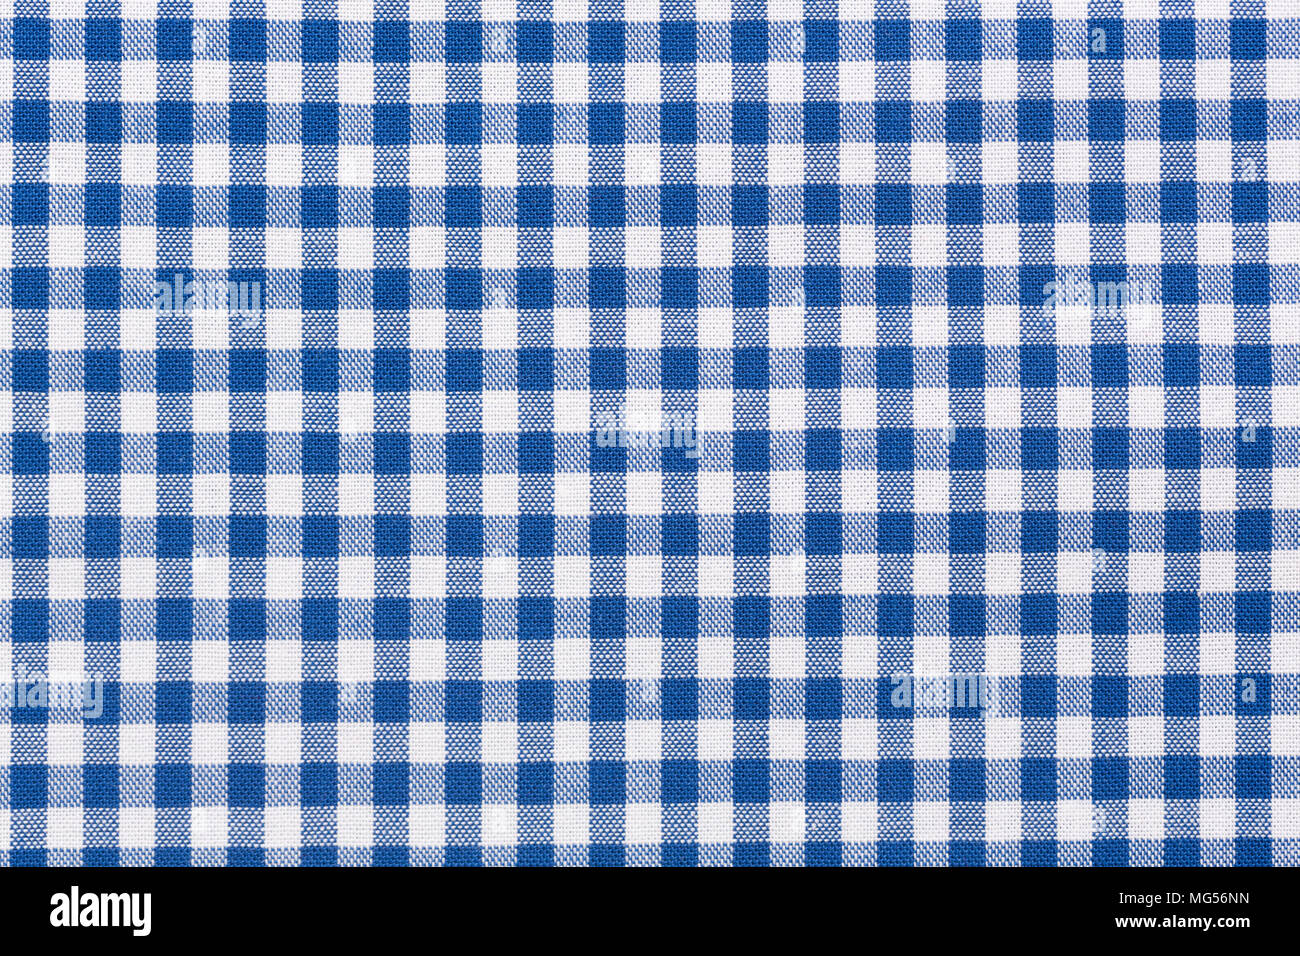 Exceptionnel Background Of Blue And White Checkered Tablecloth Stock ...